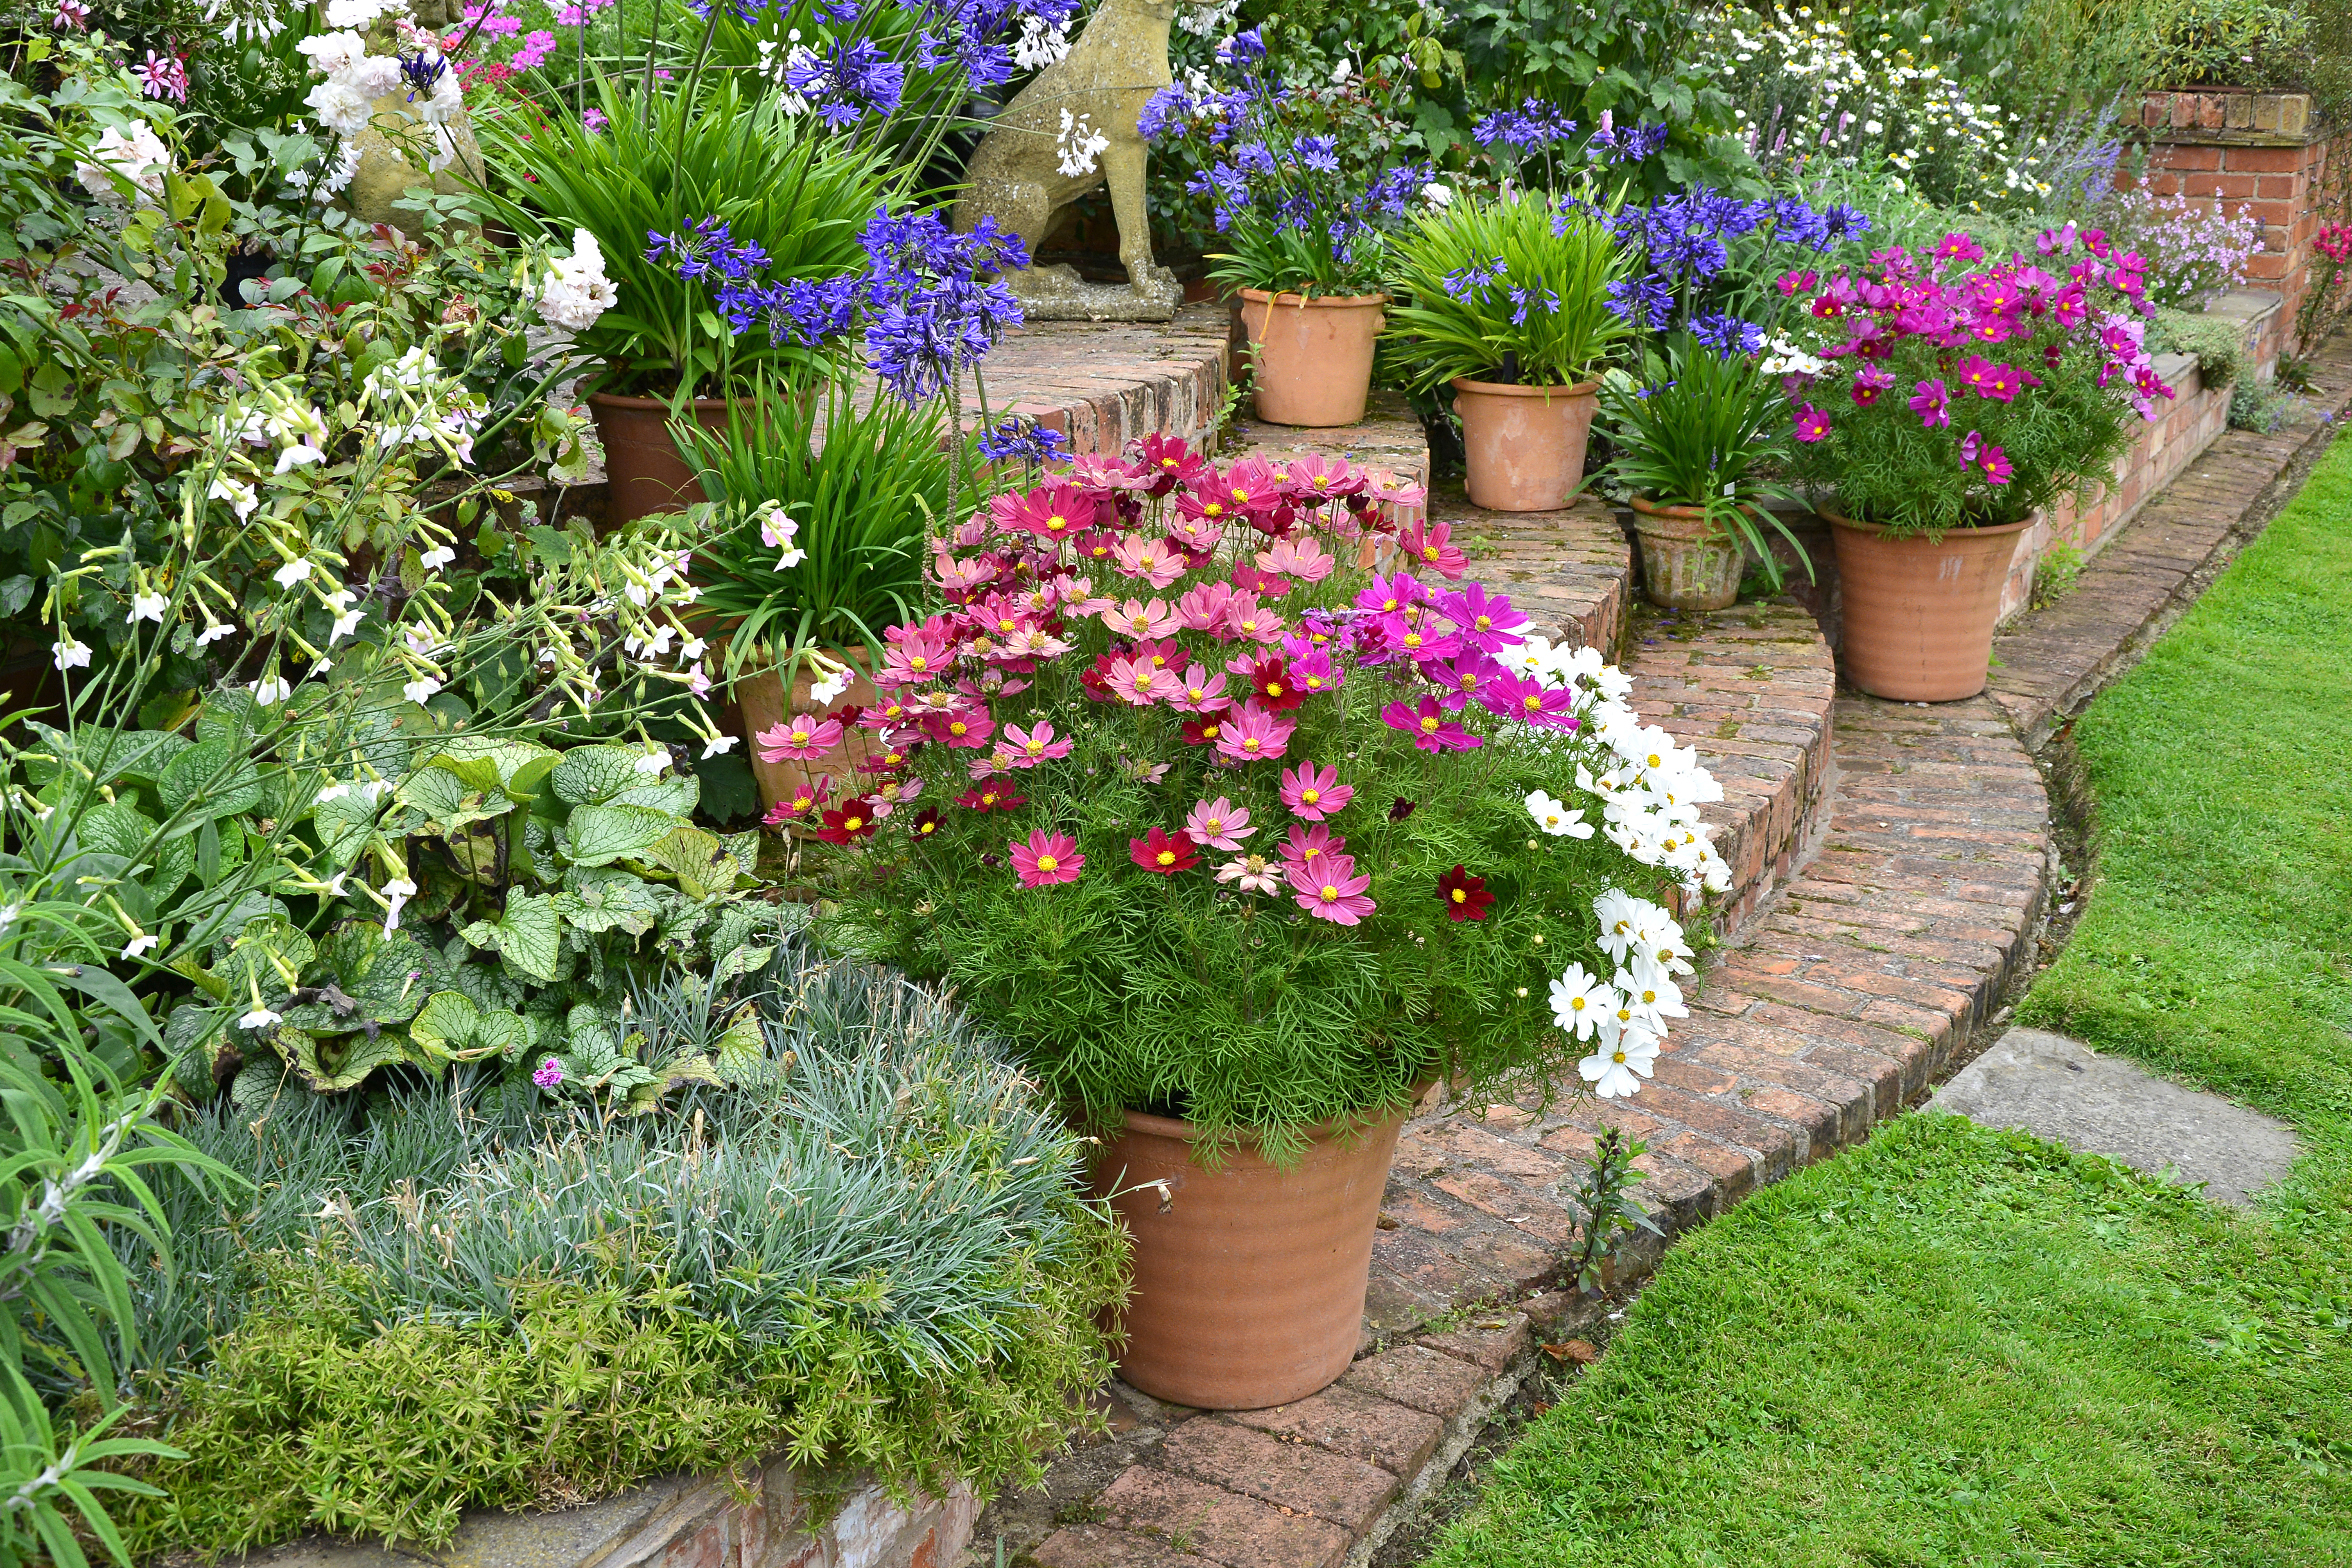 & How to Plant Pots Planters Containers | The Old Farmer\u0027s Almanac